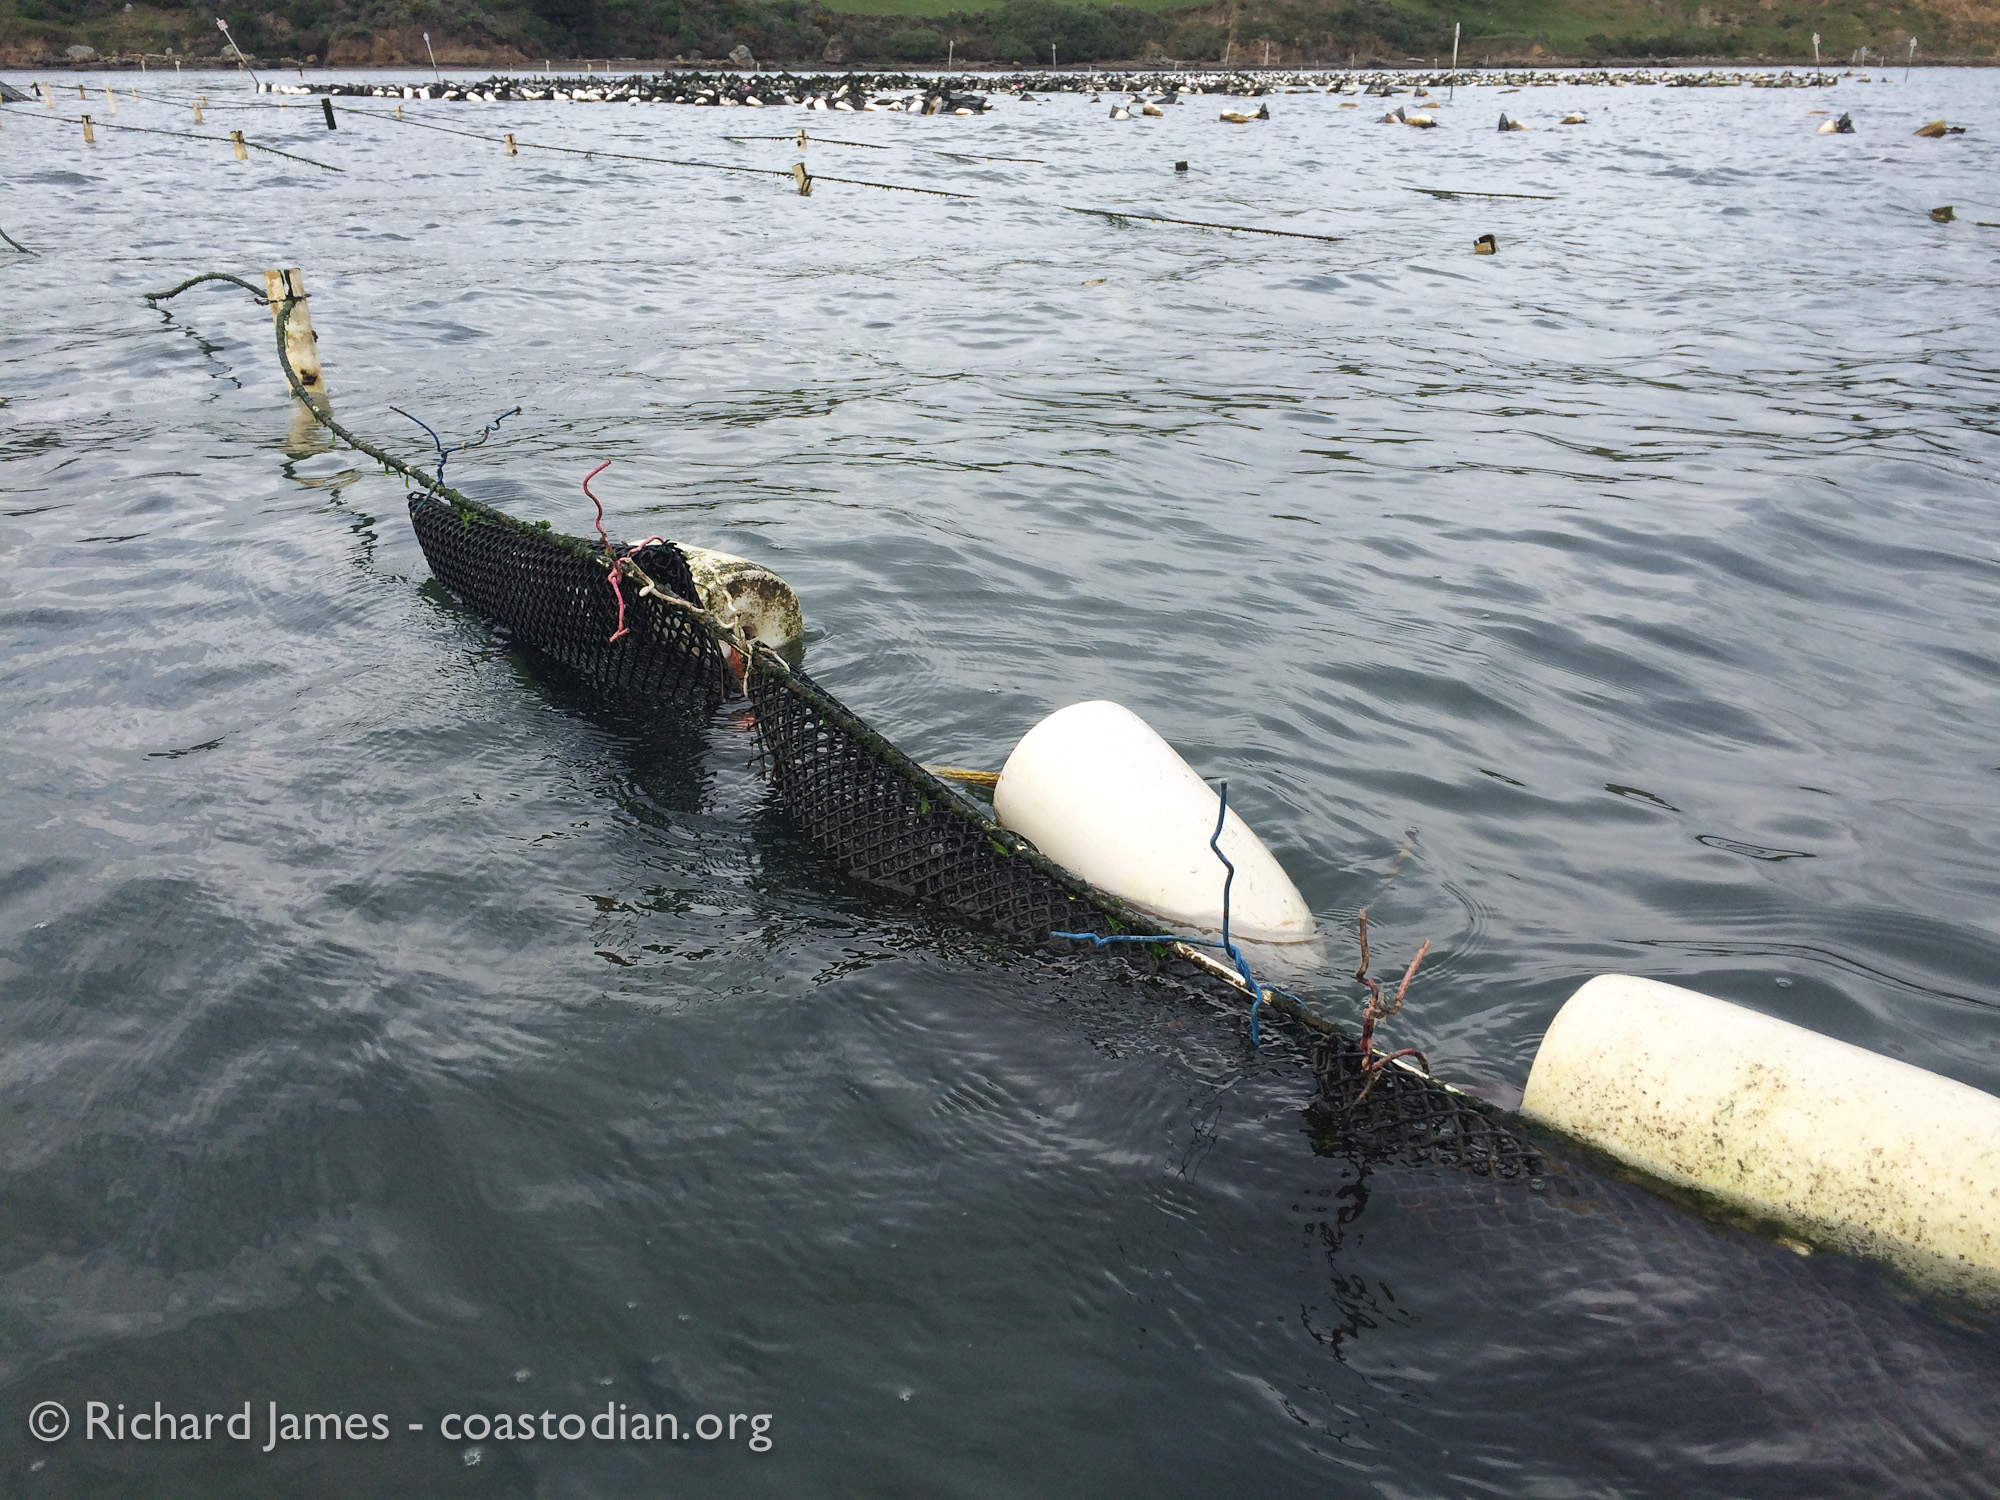 ©Richard James - coastodian.org Recovered bags with live oysters, now reattached on lease M-430-15, see waypoint T21 on map at top of post.